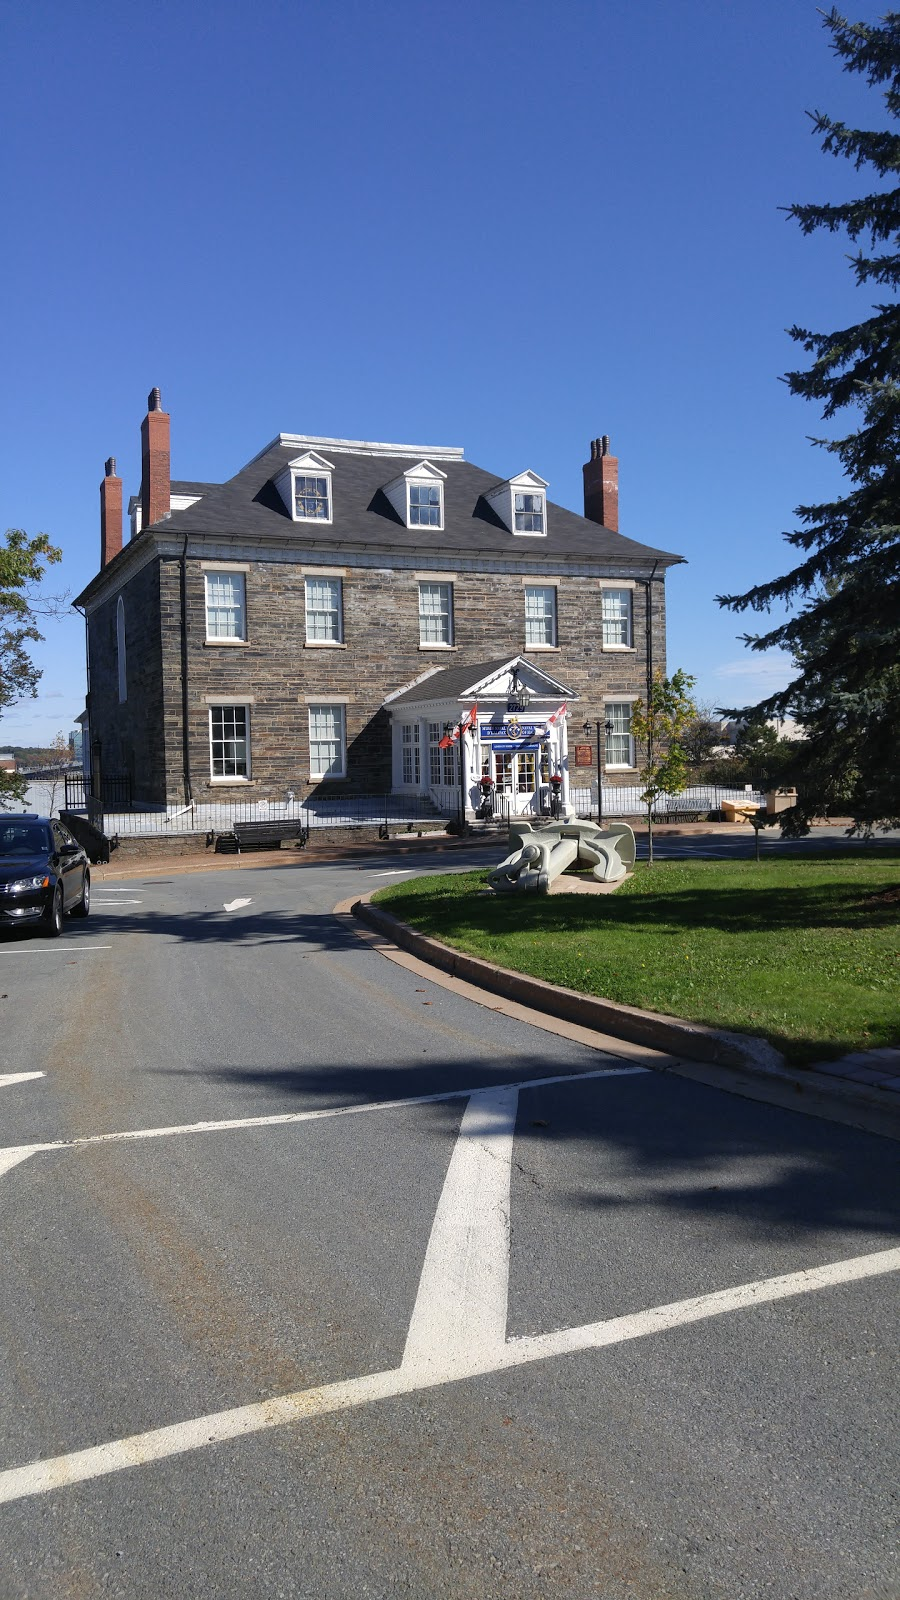 Maritime Command Museum | museum | 2729 Gottingen St, Halifax, NS B3K 5X5, Canada | 9027218250 OR +1 902-721-8250